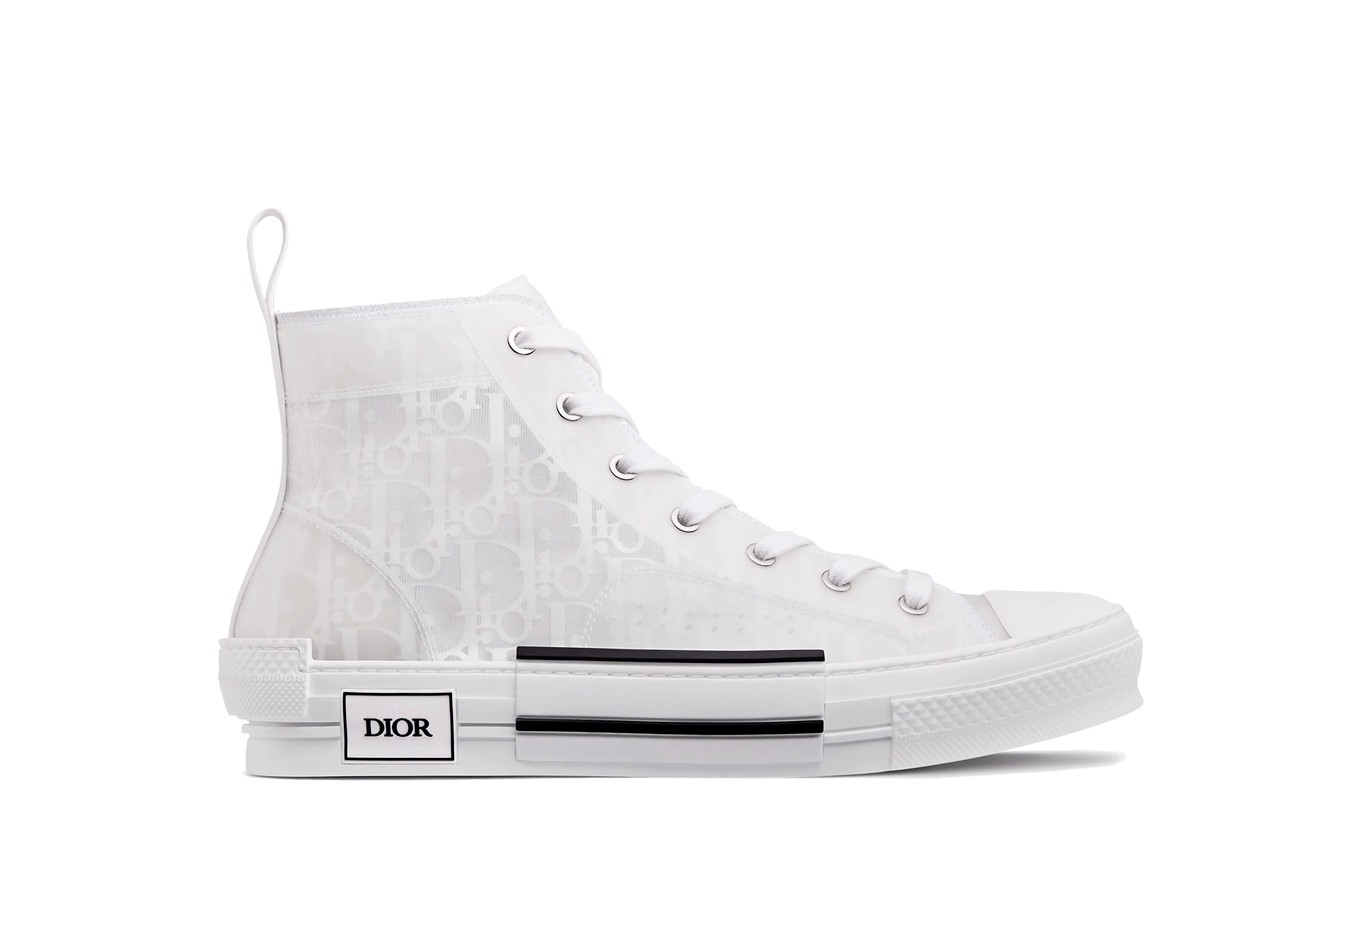 For sale the best Dior     High-Top White